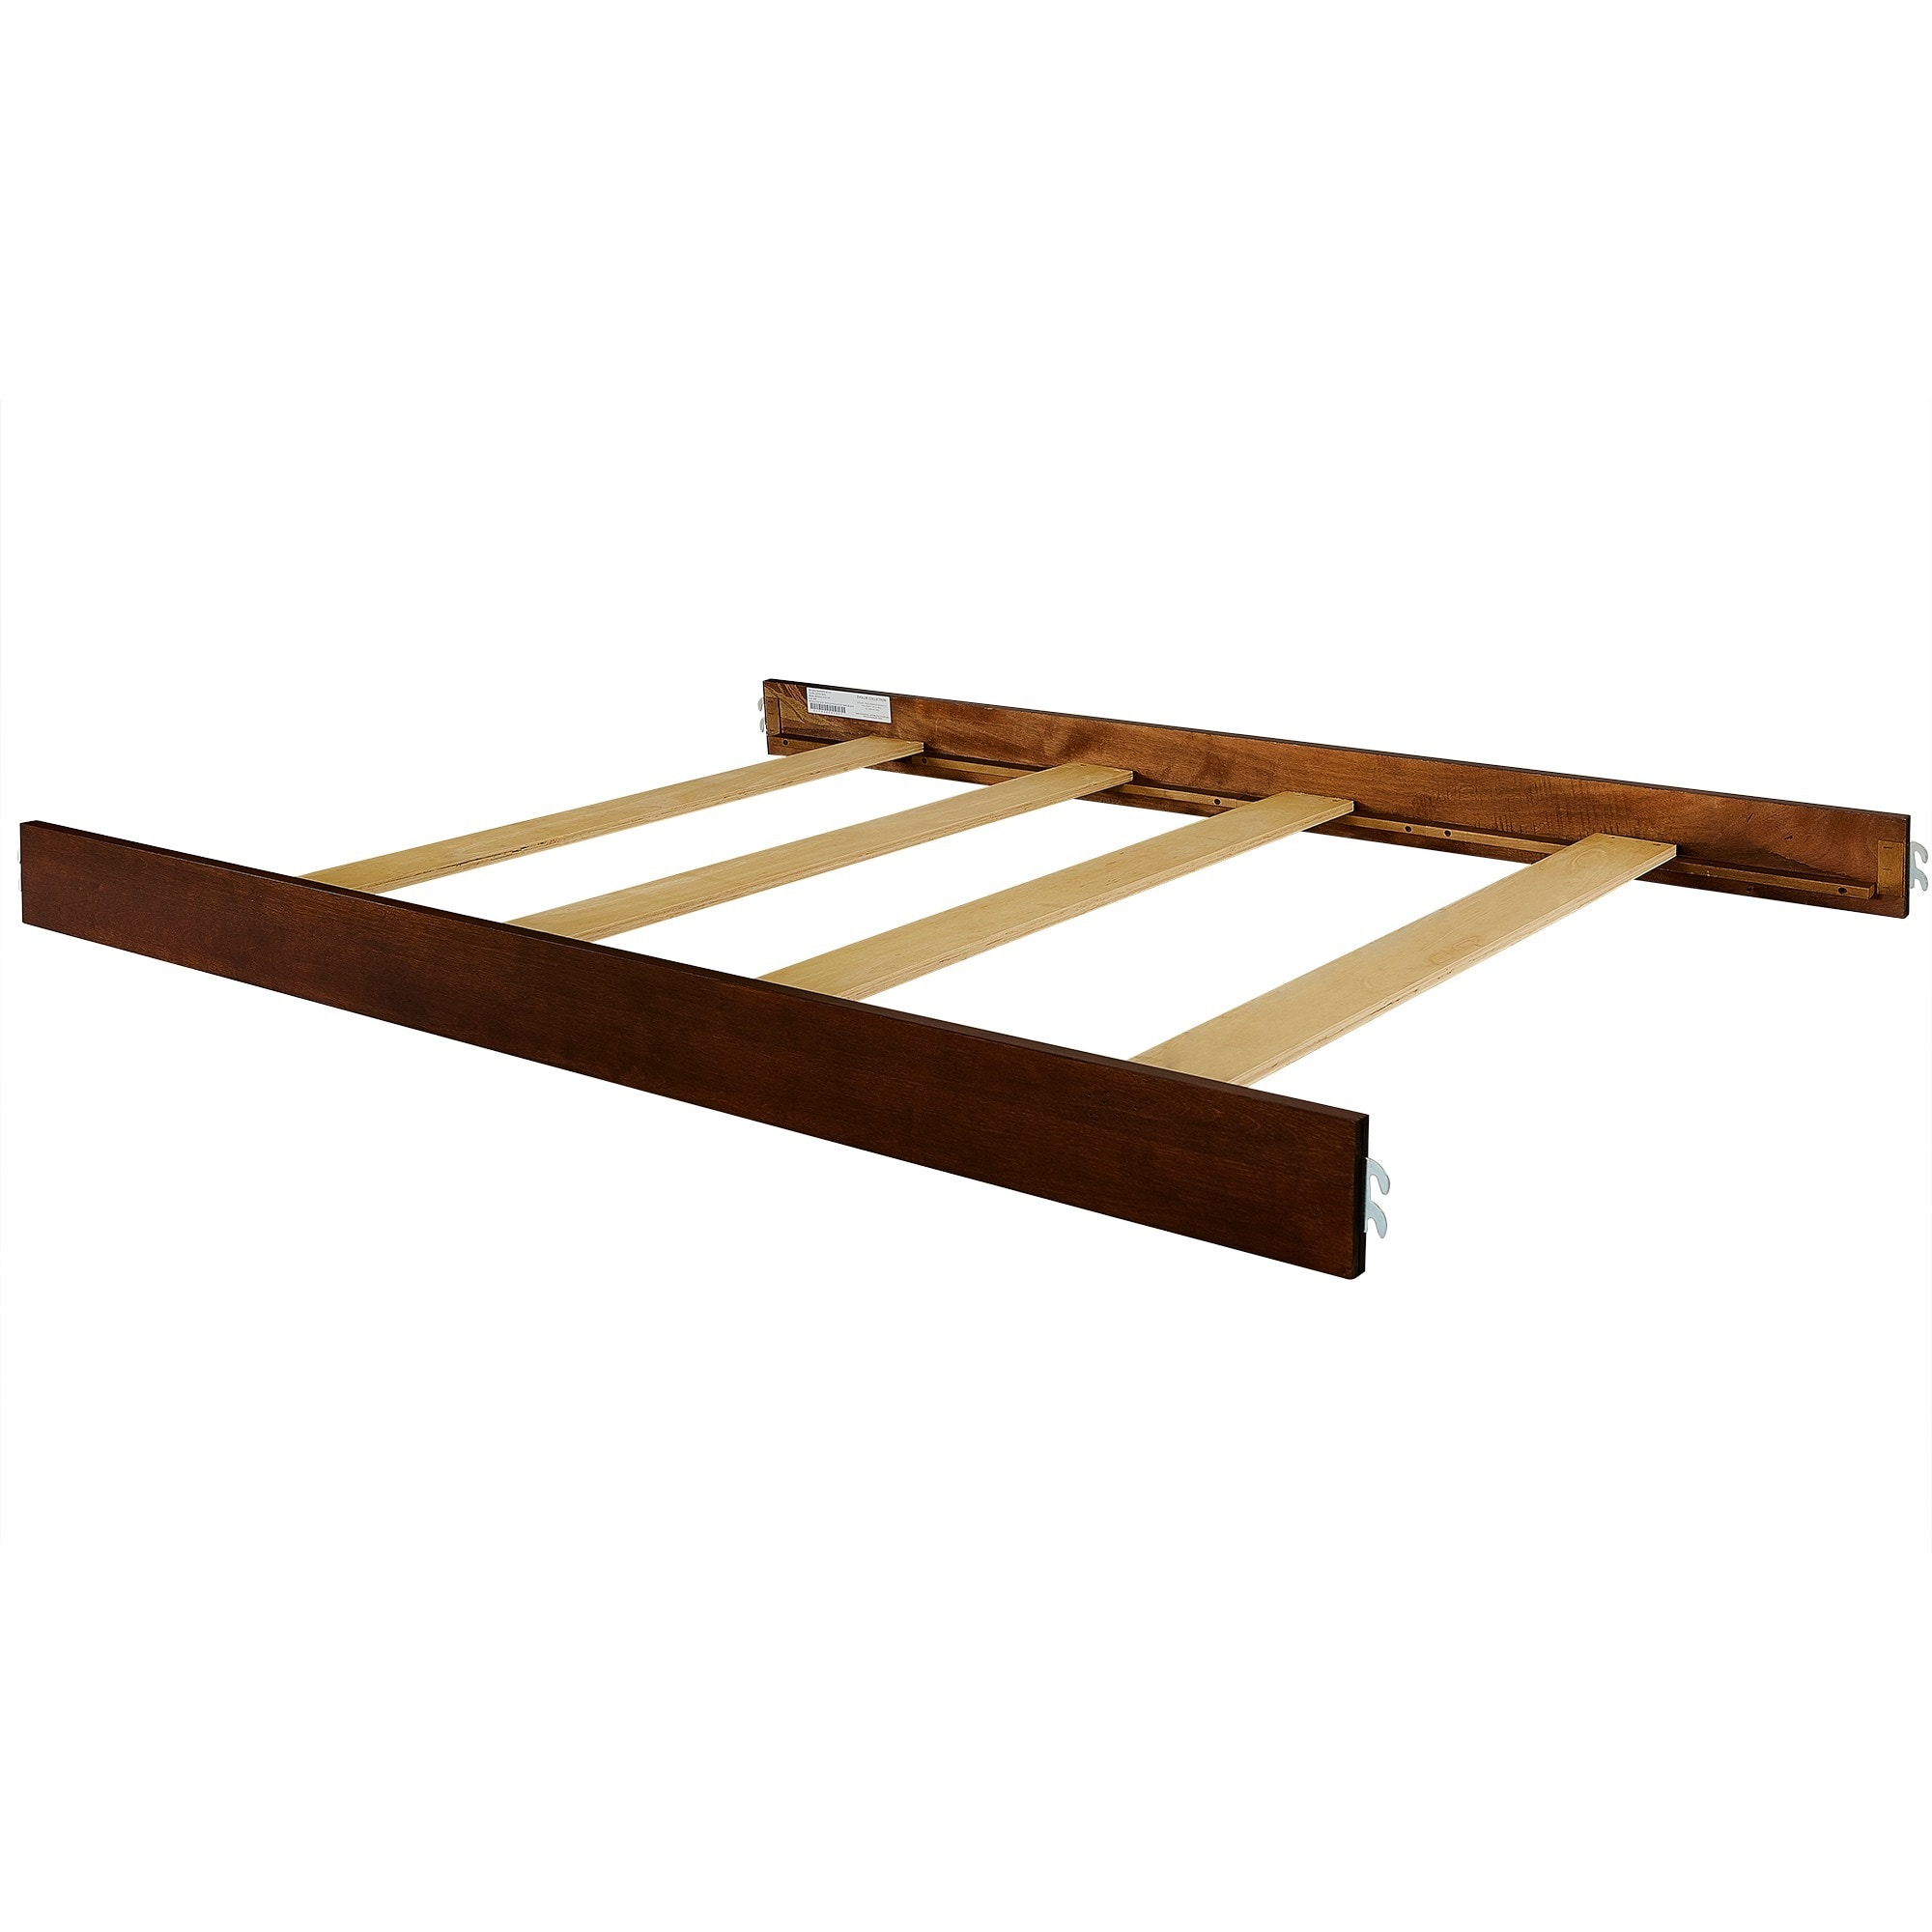 Evolur Convertible Crib Wooden Full Size Bed Rail (Sienna...